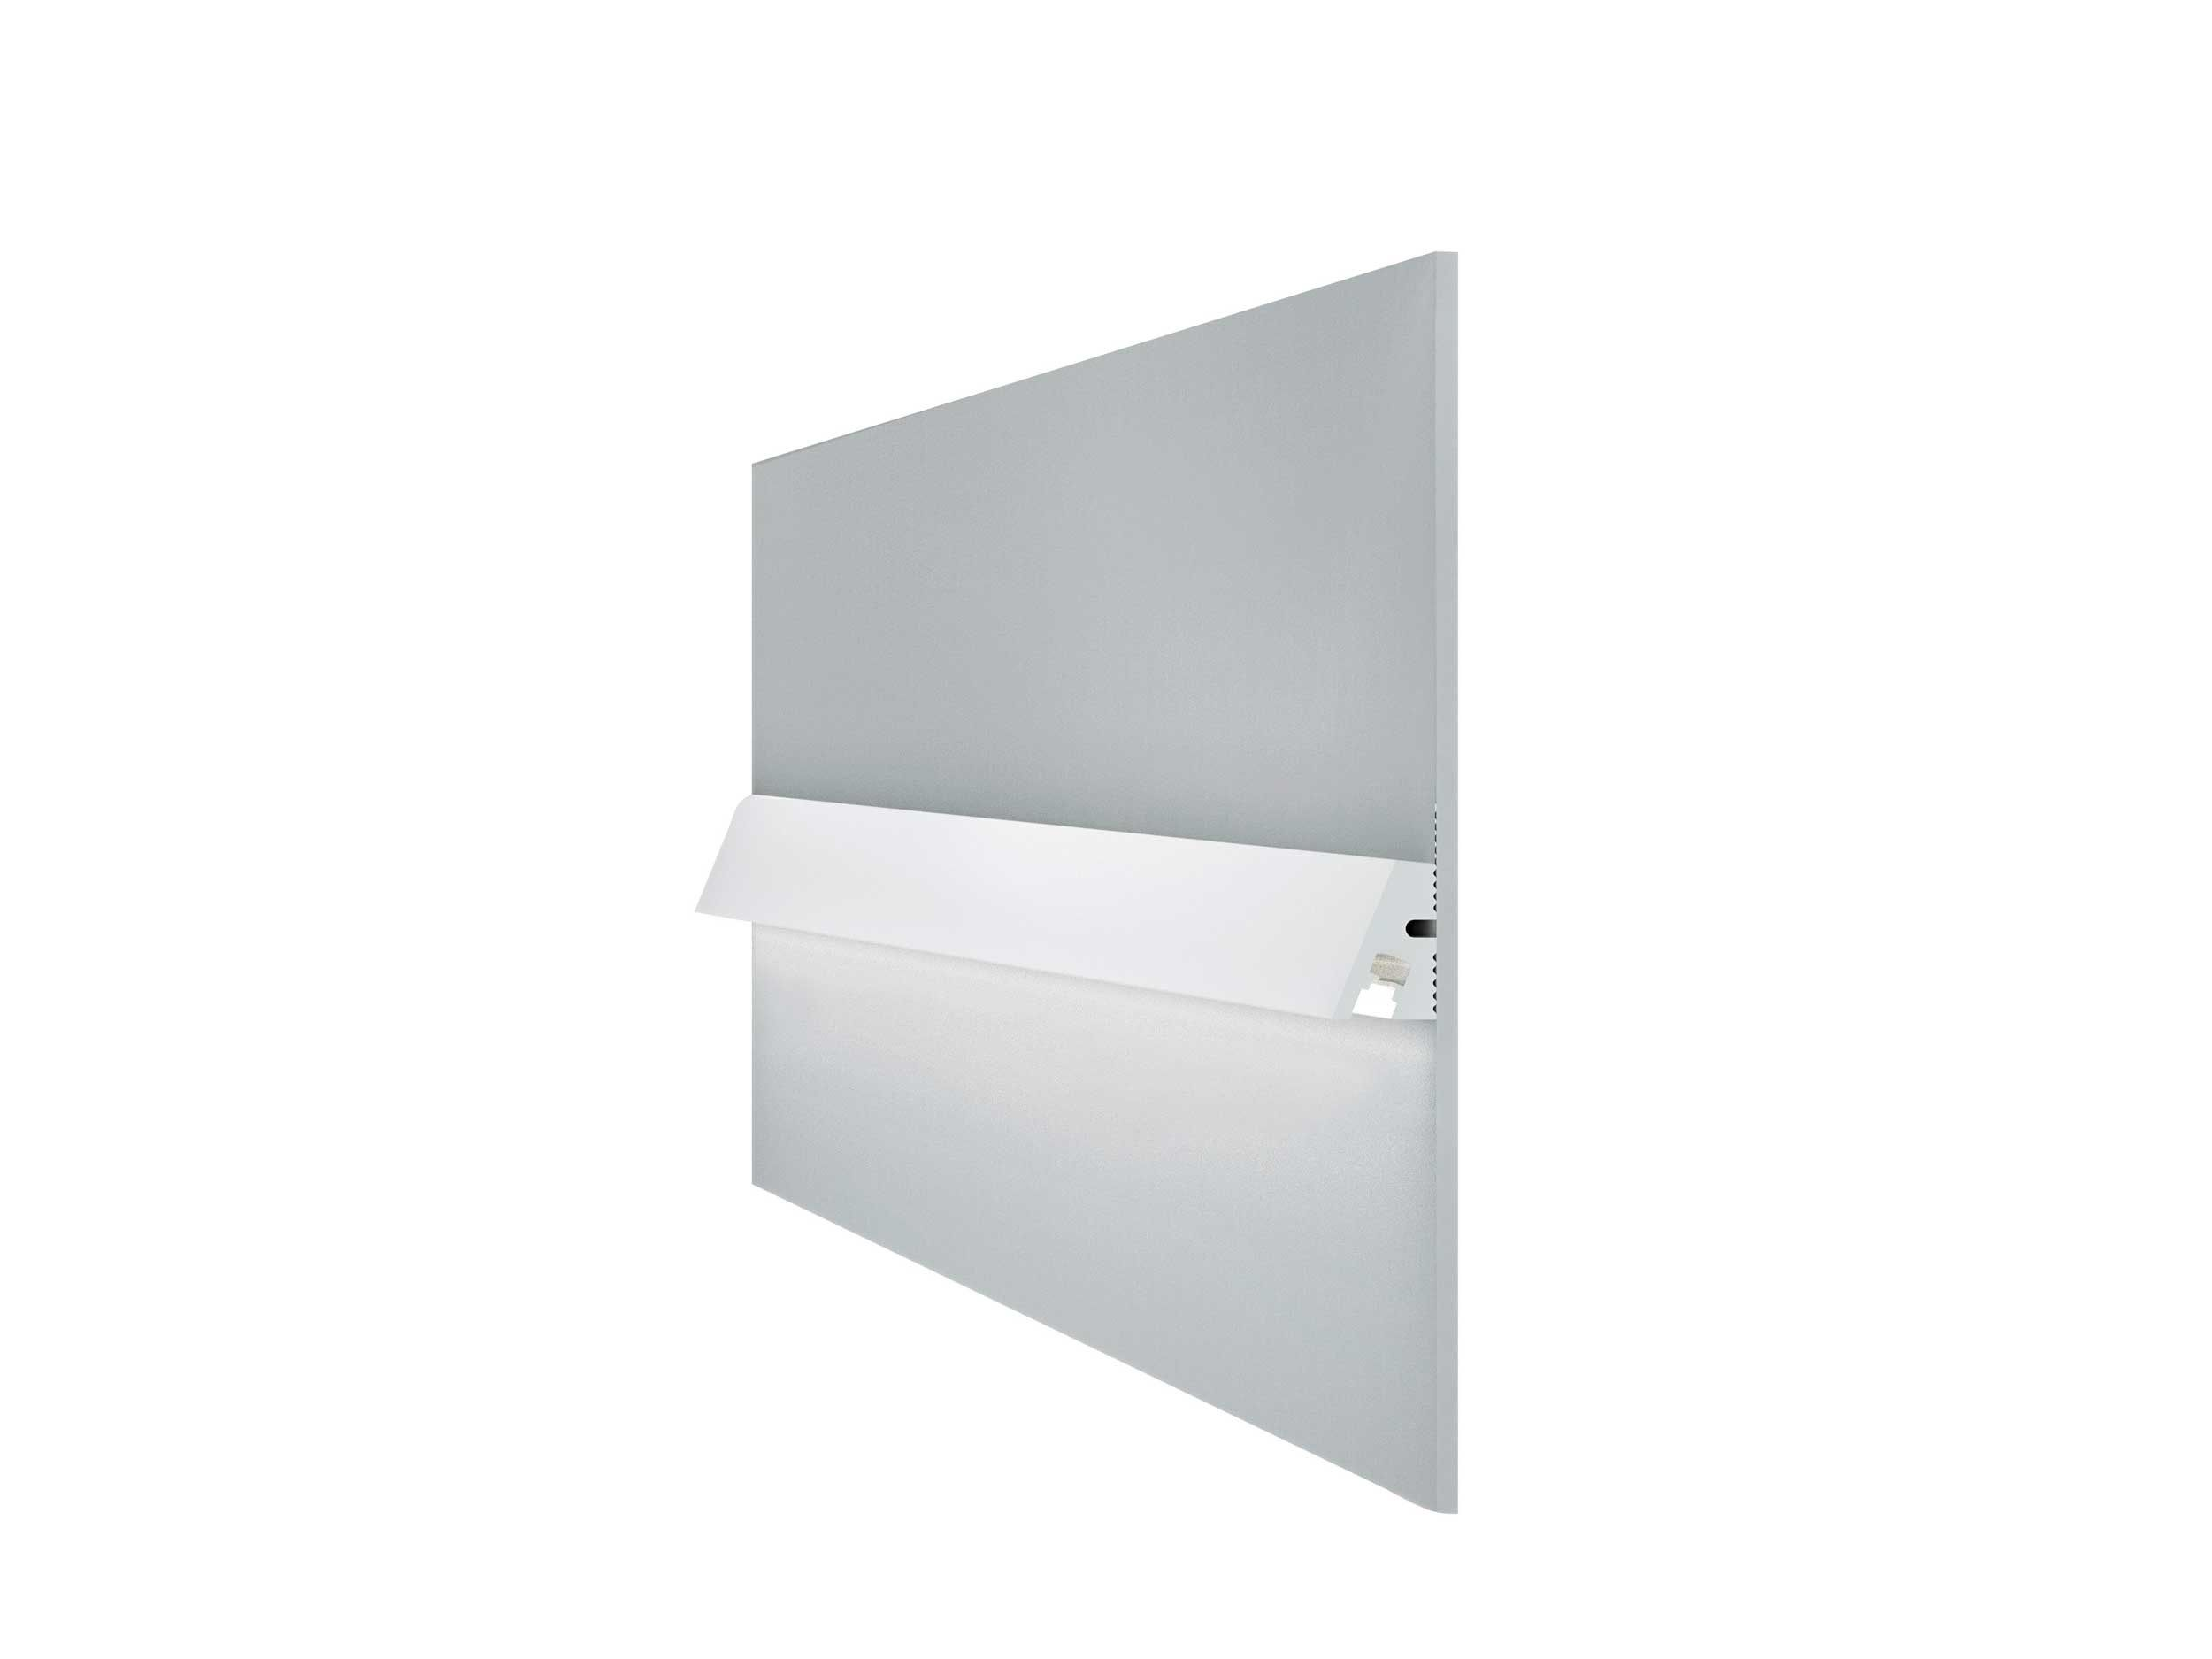 Built in outdoor LED light bar FYLO OUTDOOR by Linea Light